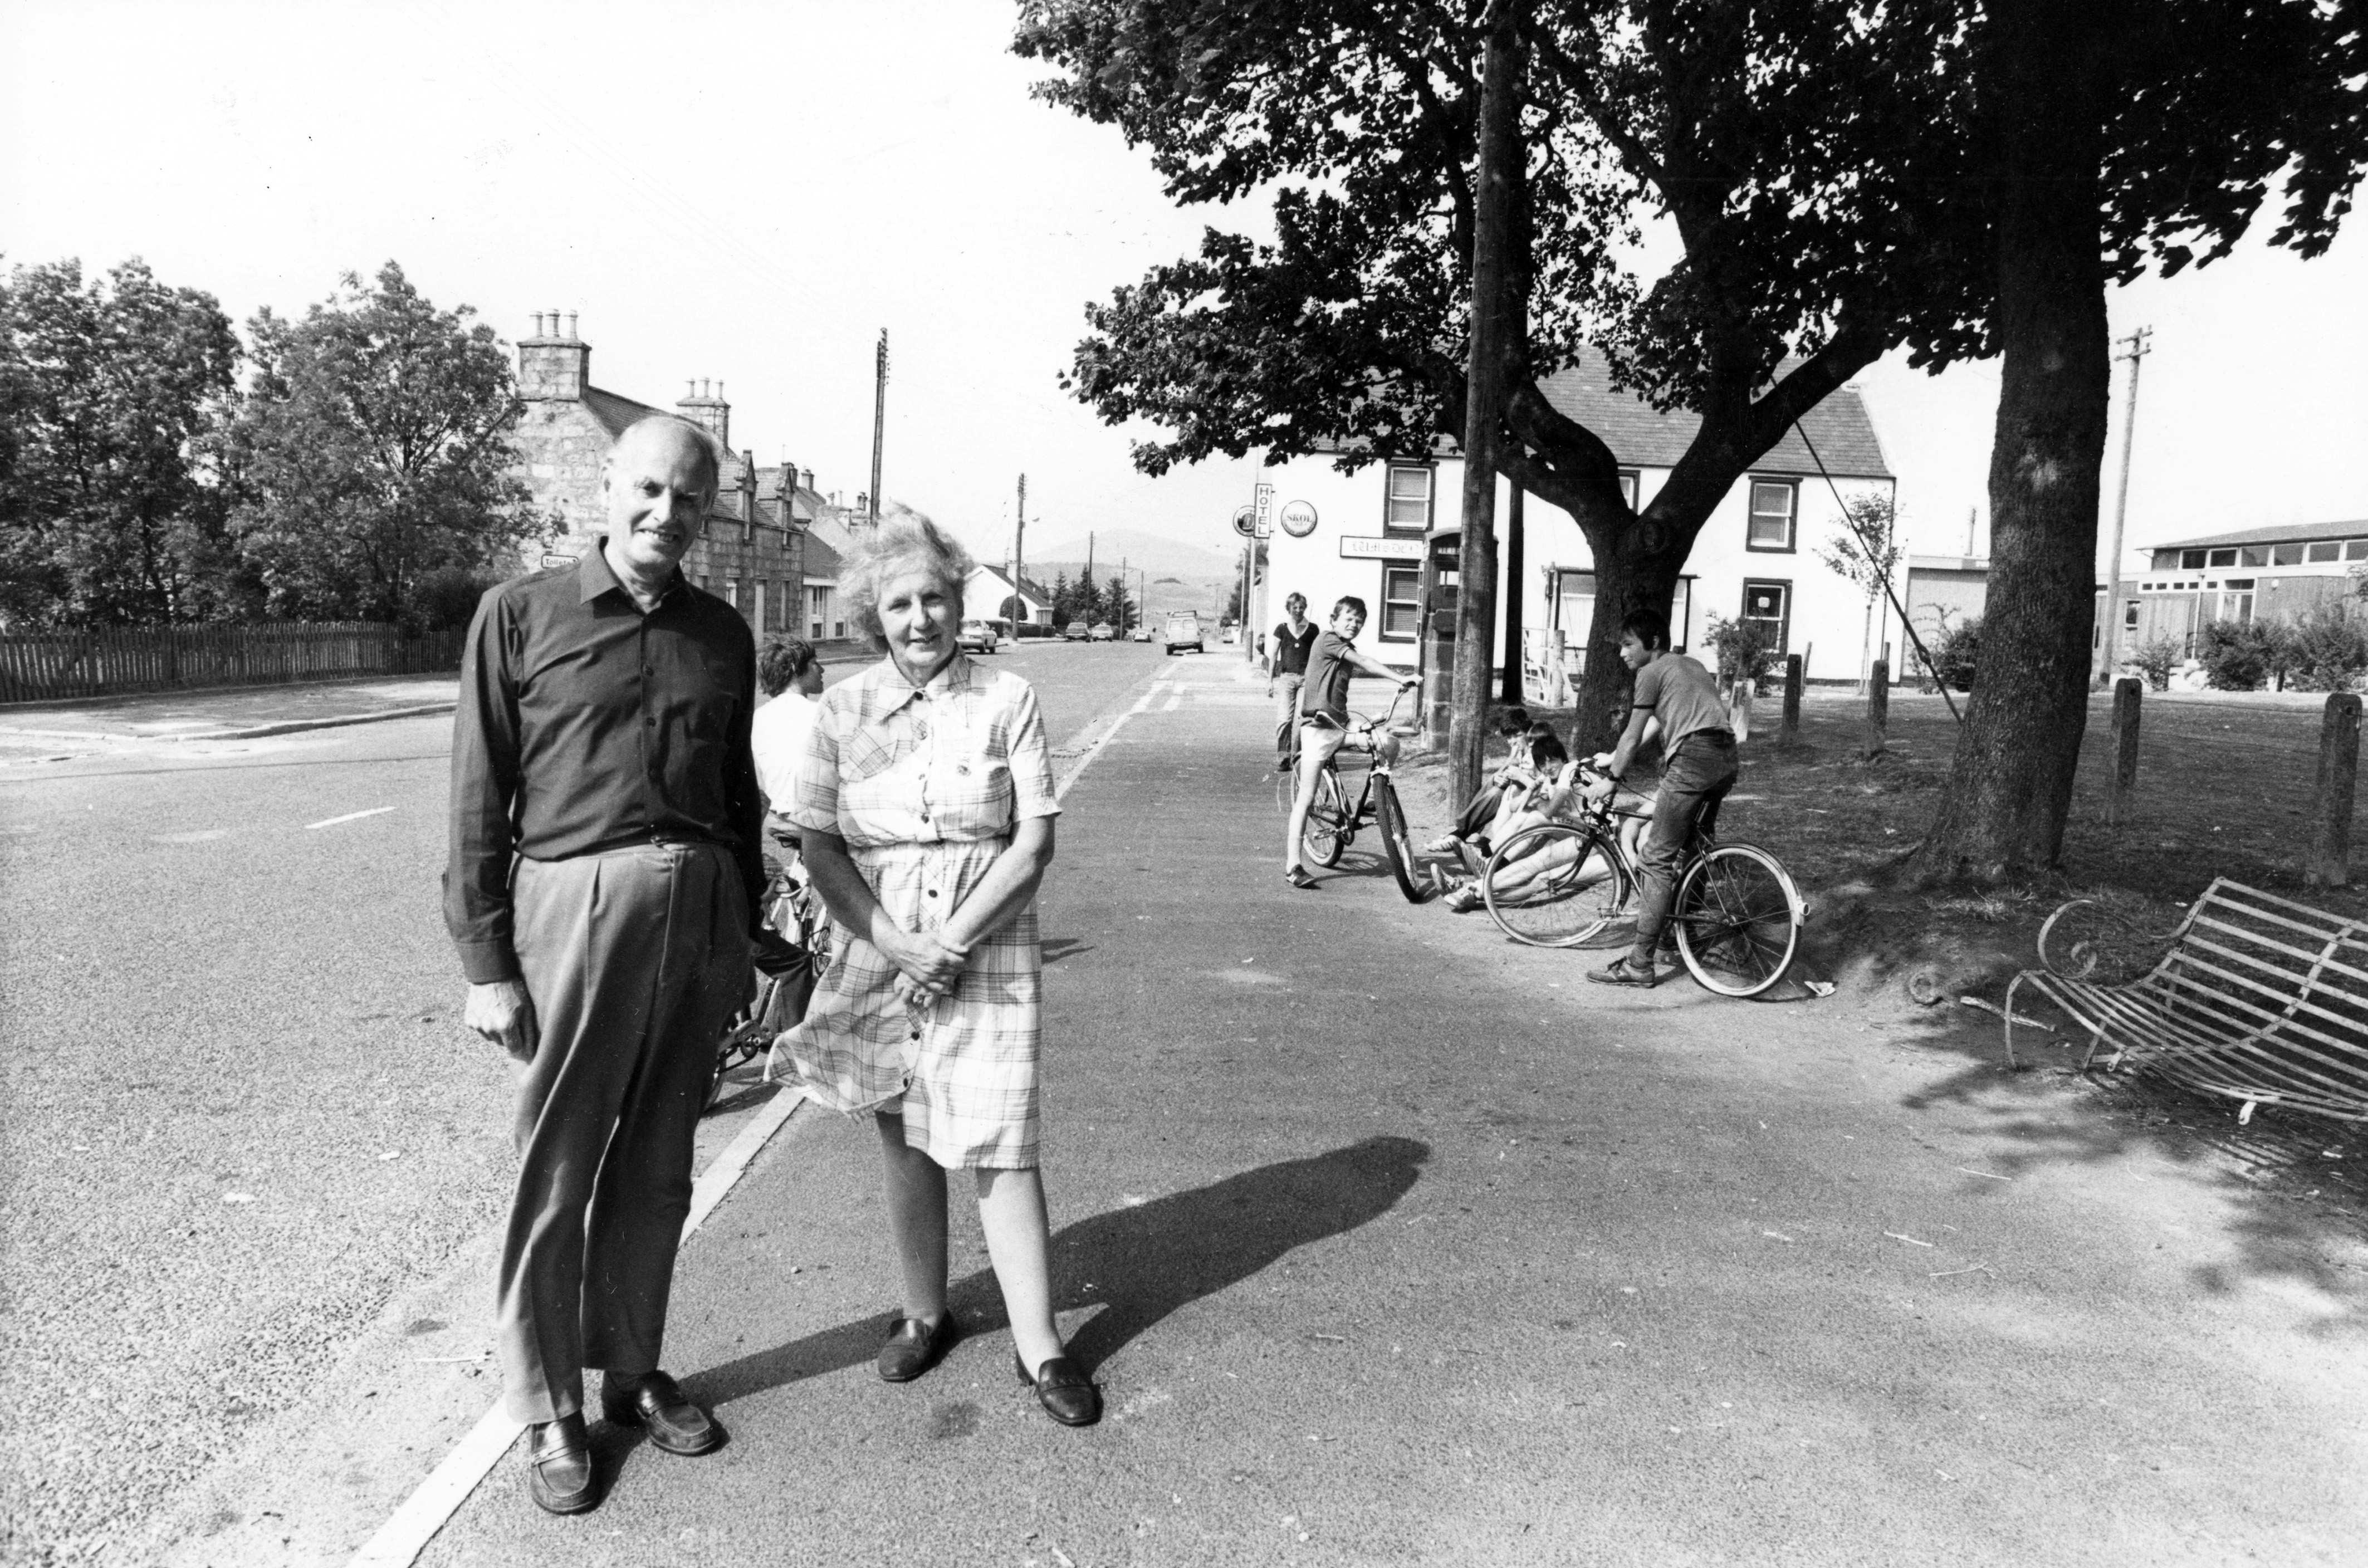 Malcolm and Susan Gray in the Main Street, with the village green to the right, and the Tap o' Noth in the distance